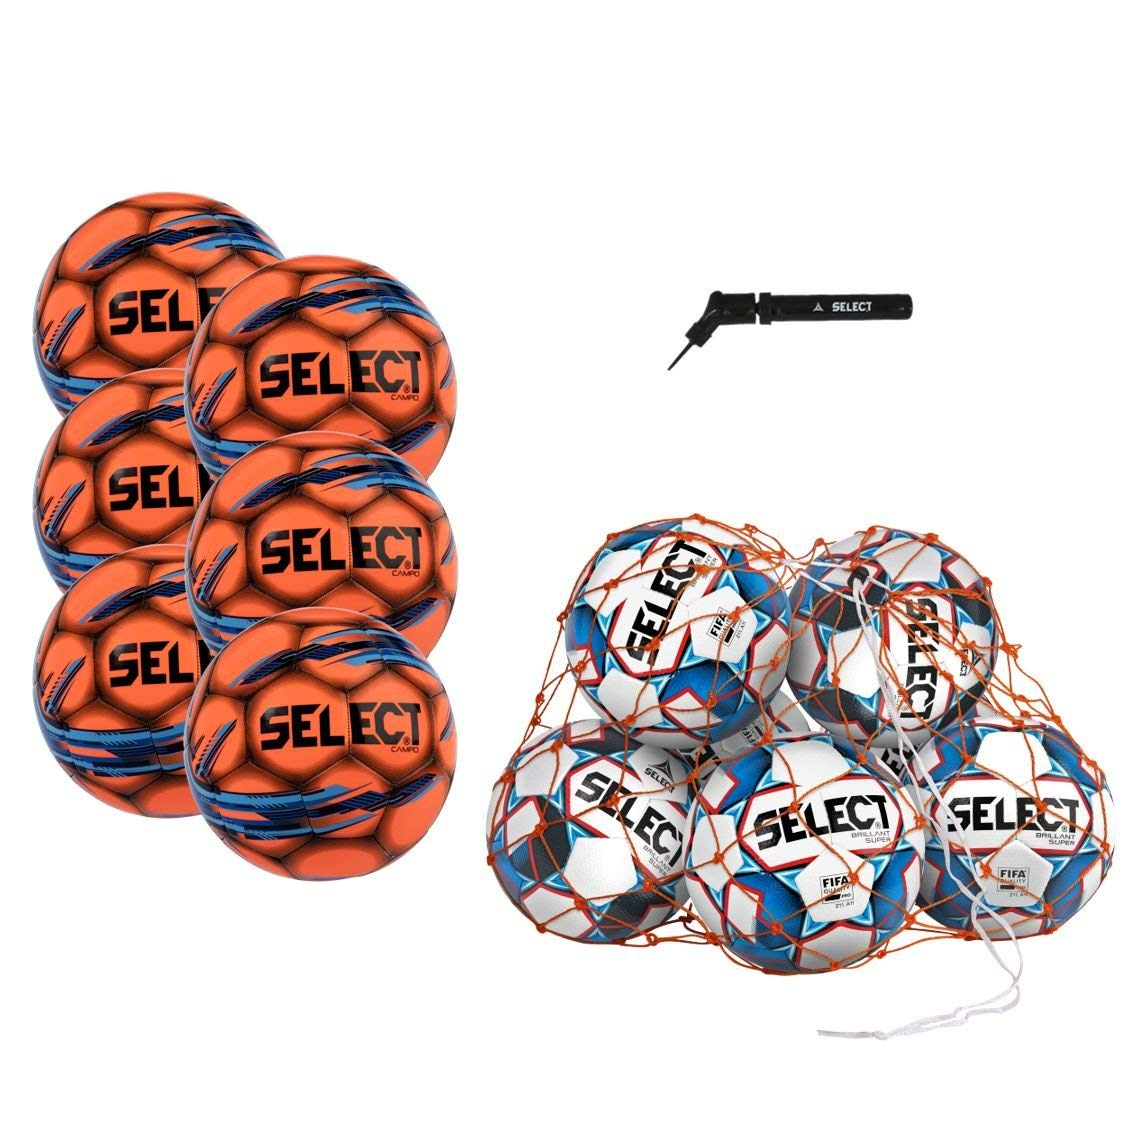 Select Campo Soccer Ball Package - Pack of 6 Soccer Balls Ball Net Hand Pump, Orange, Size 5